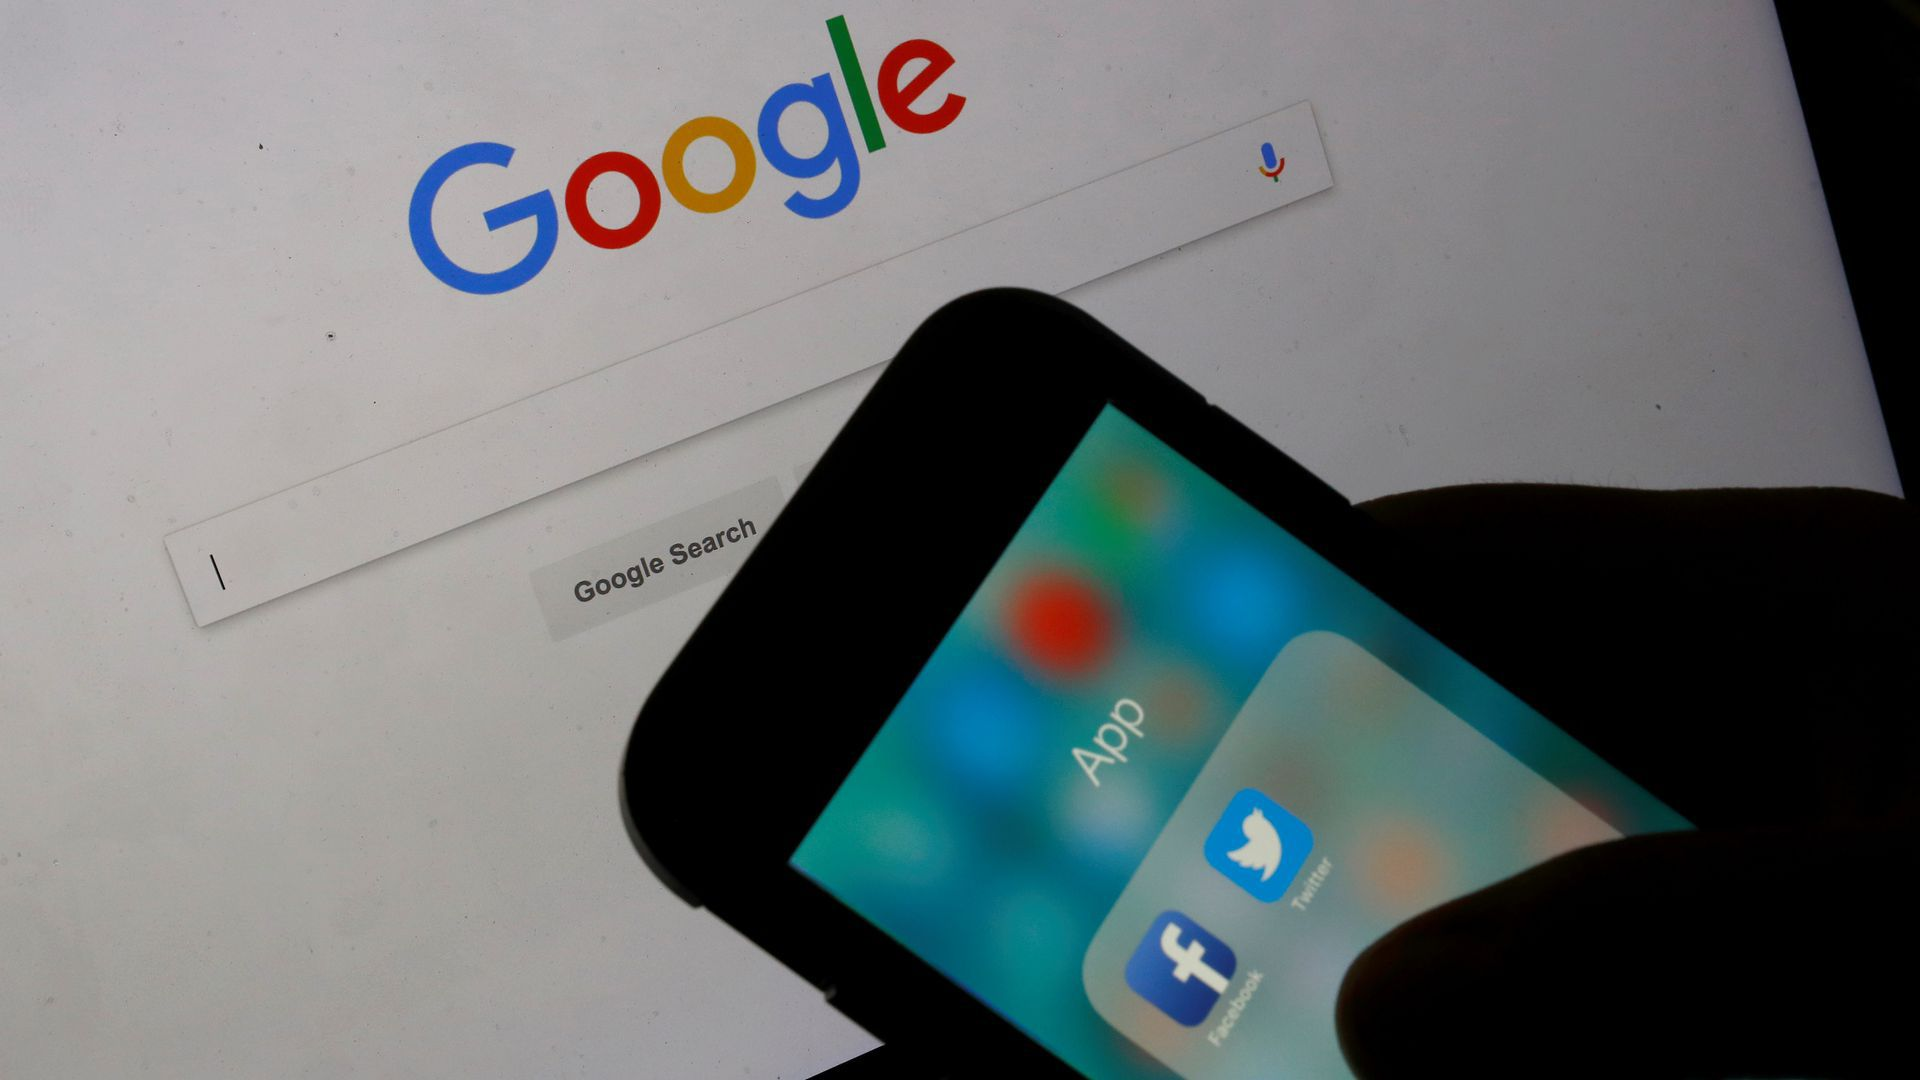 An iPhone showing Twitter and Facebook in front of a Google search page